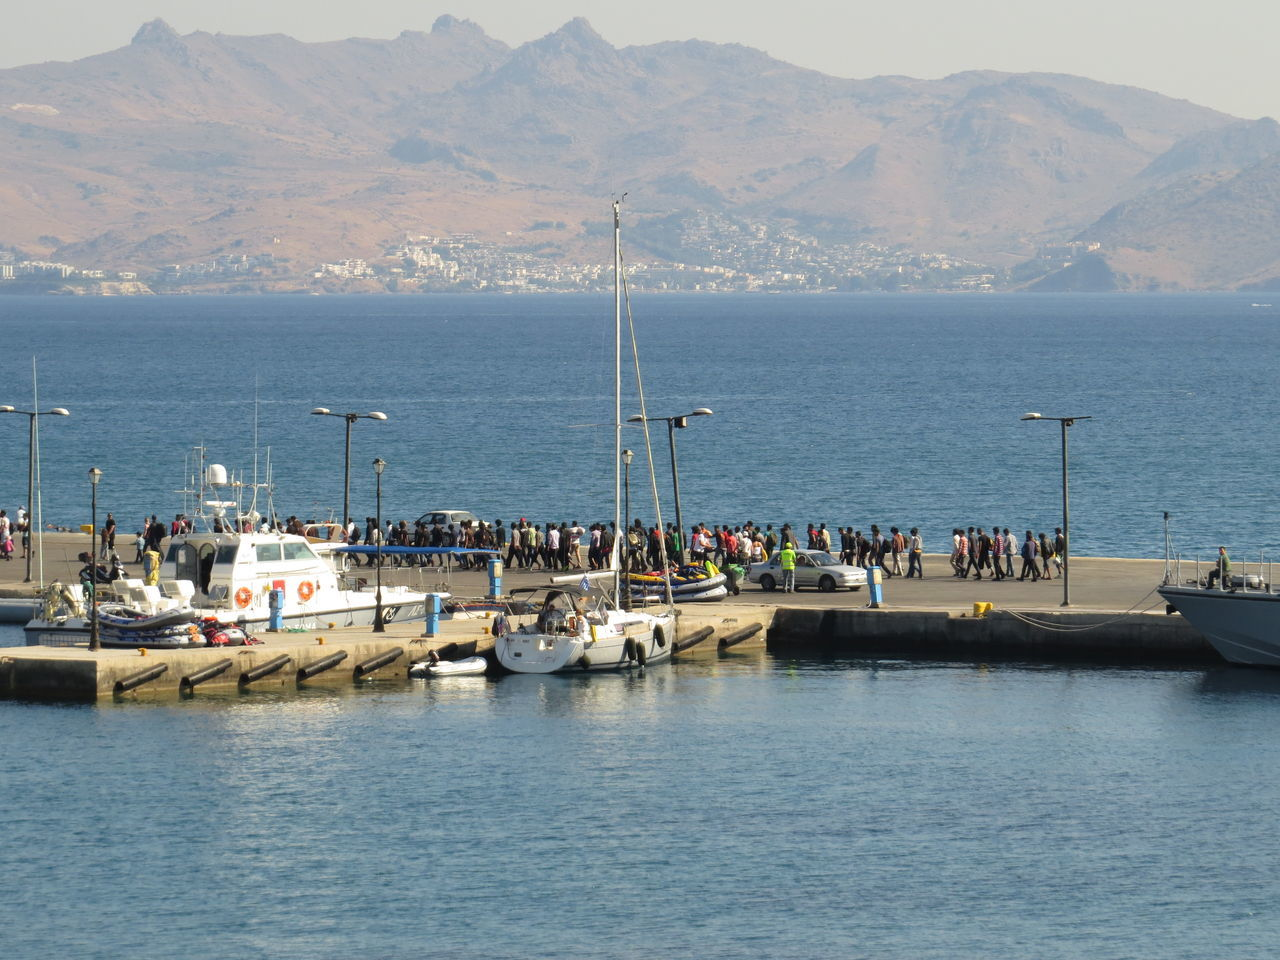 People On Pier At Port On Sea Against Mountains